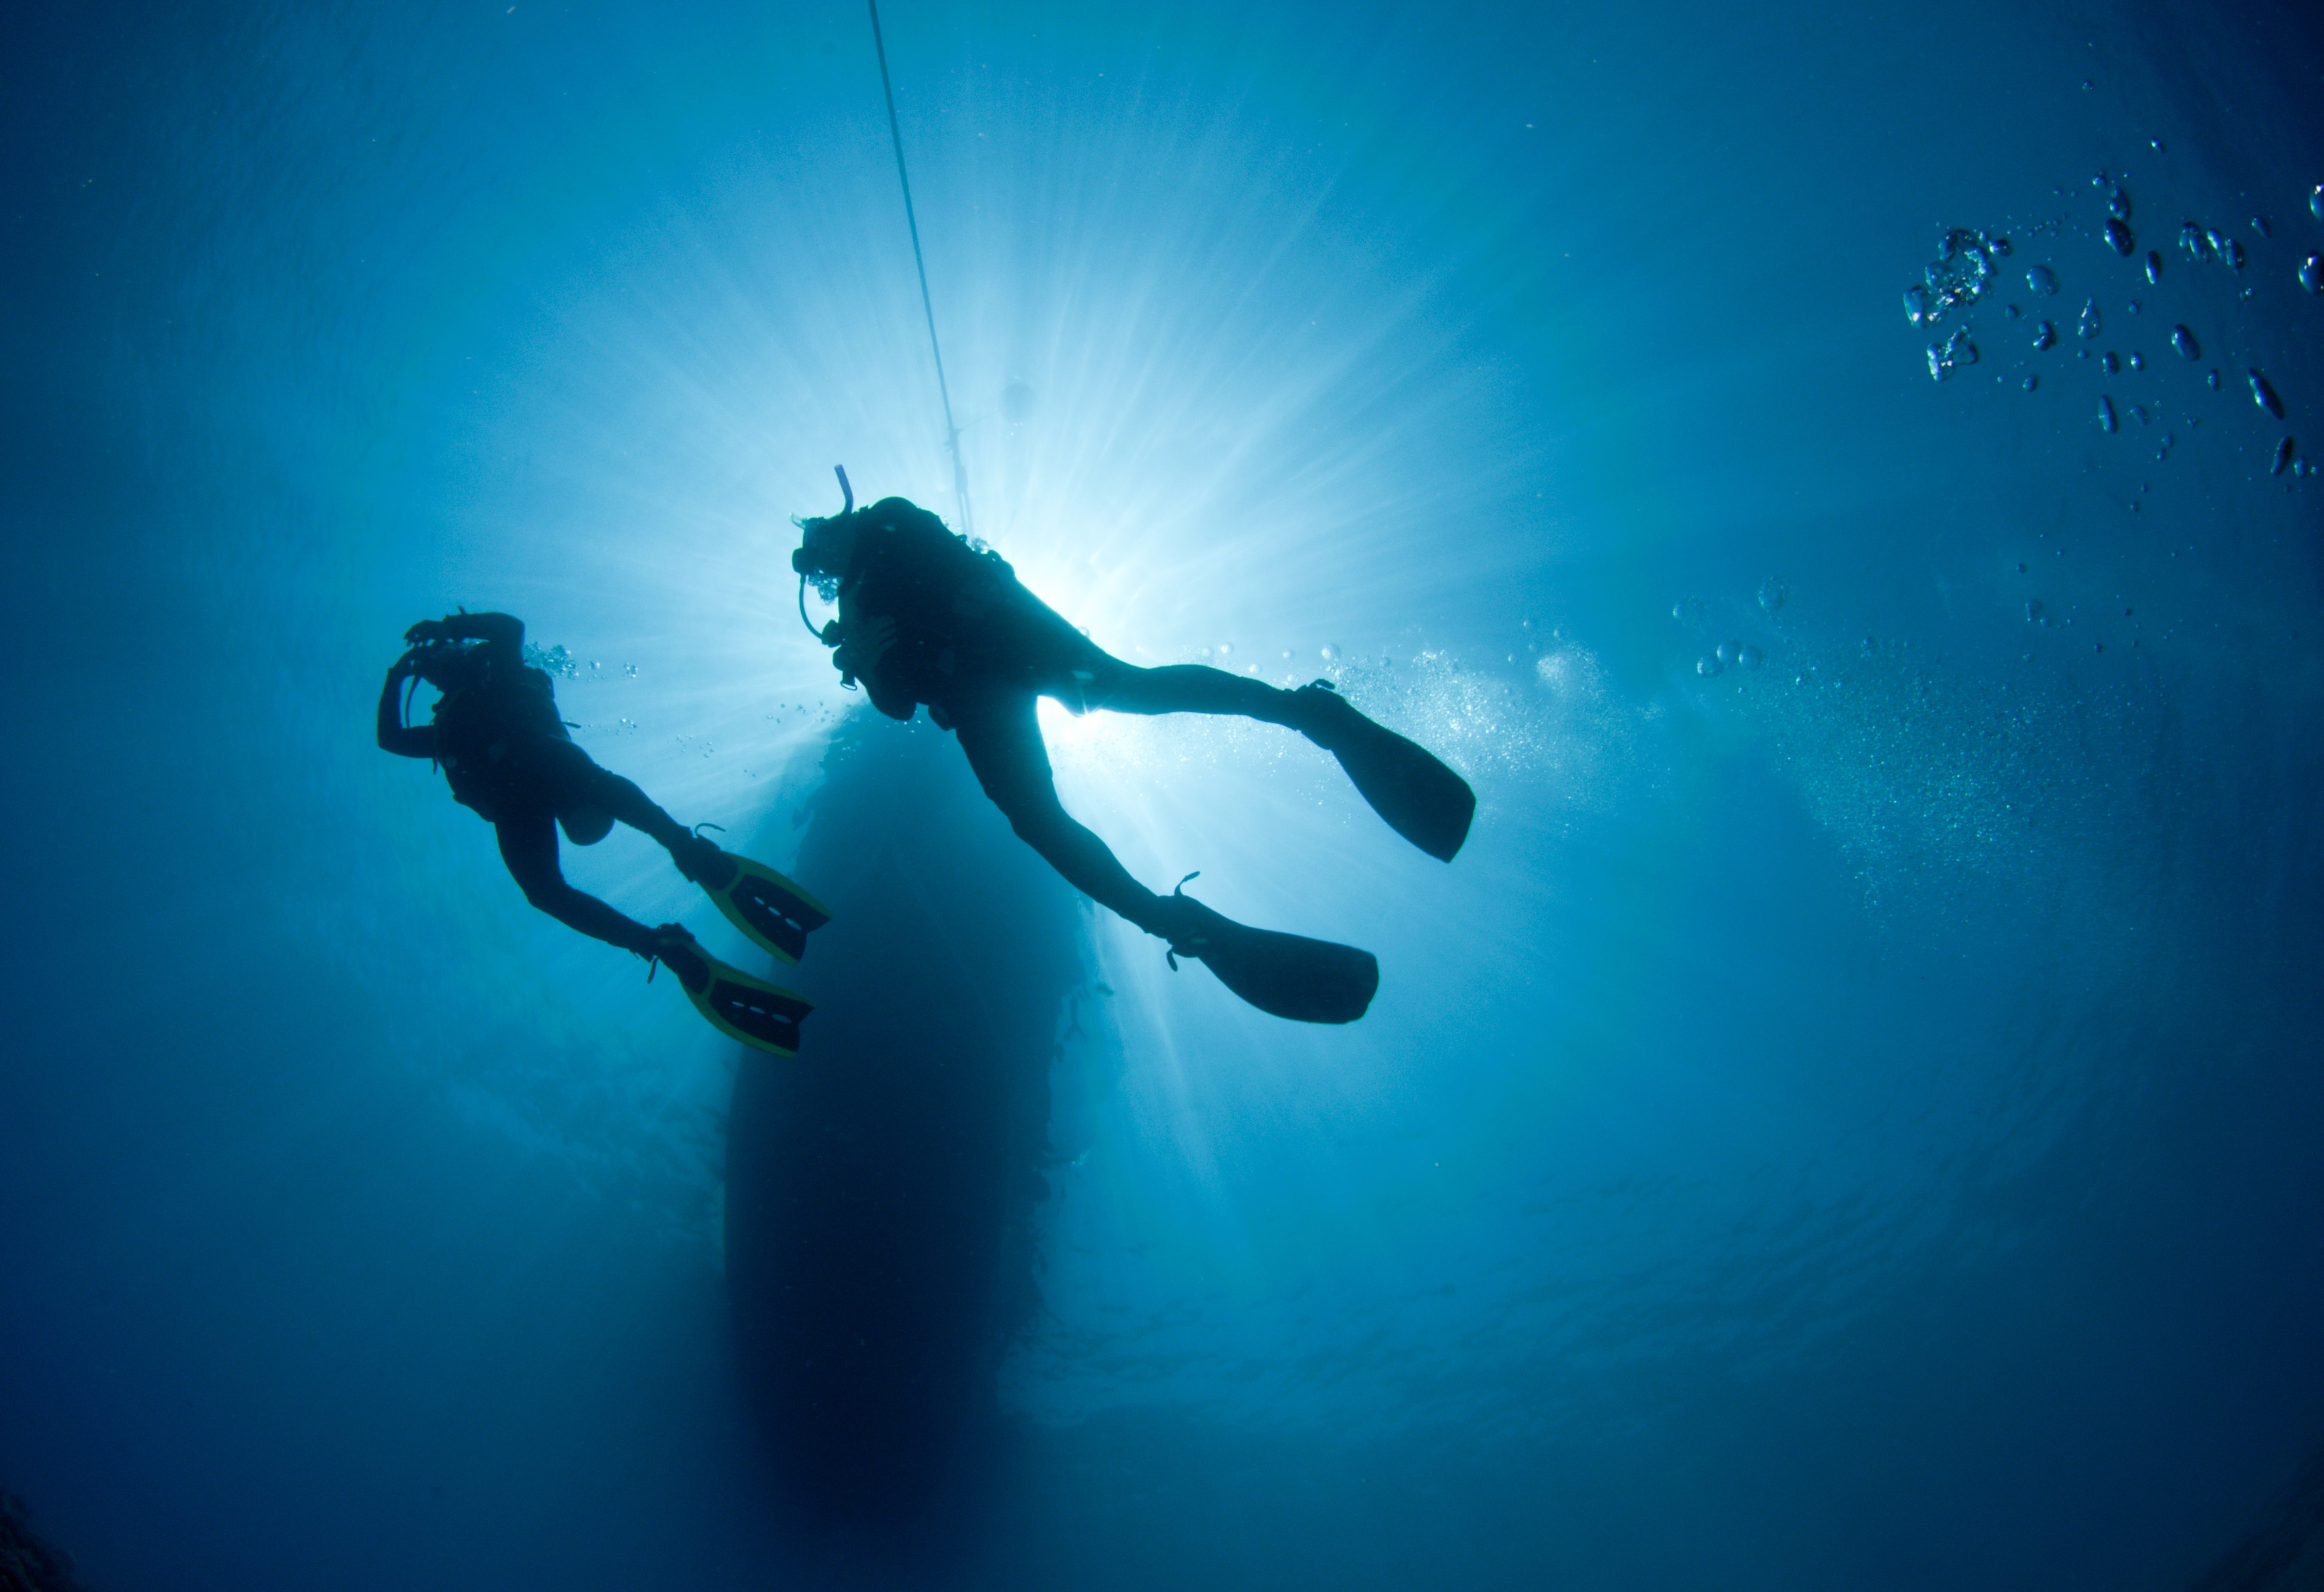 Specialties and advance open water diving certification two scuba divers are silhouetted in blue water 1betcityfo Gallery